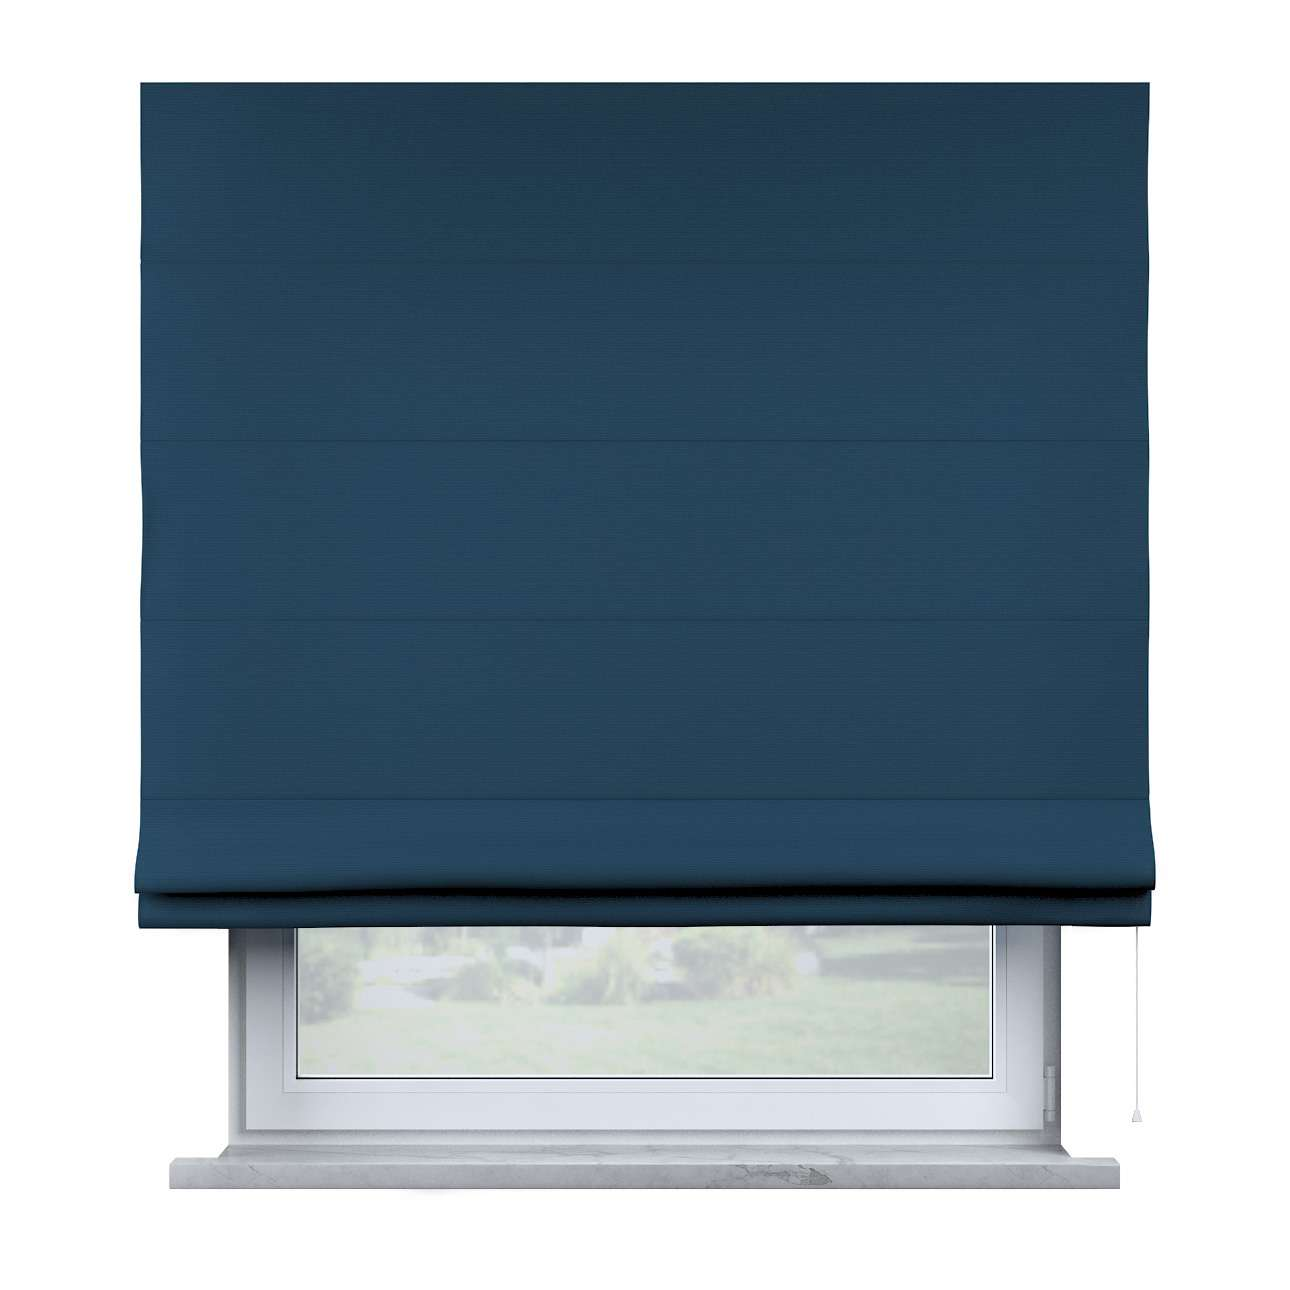 Billie roman blind in collection Cotton Story, fabric: 702-30